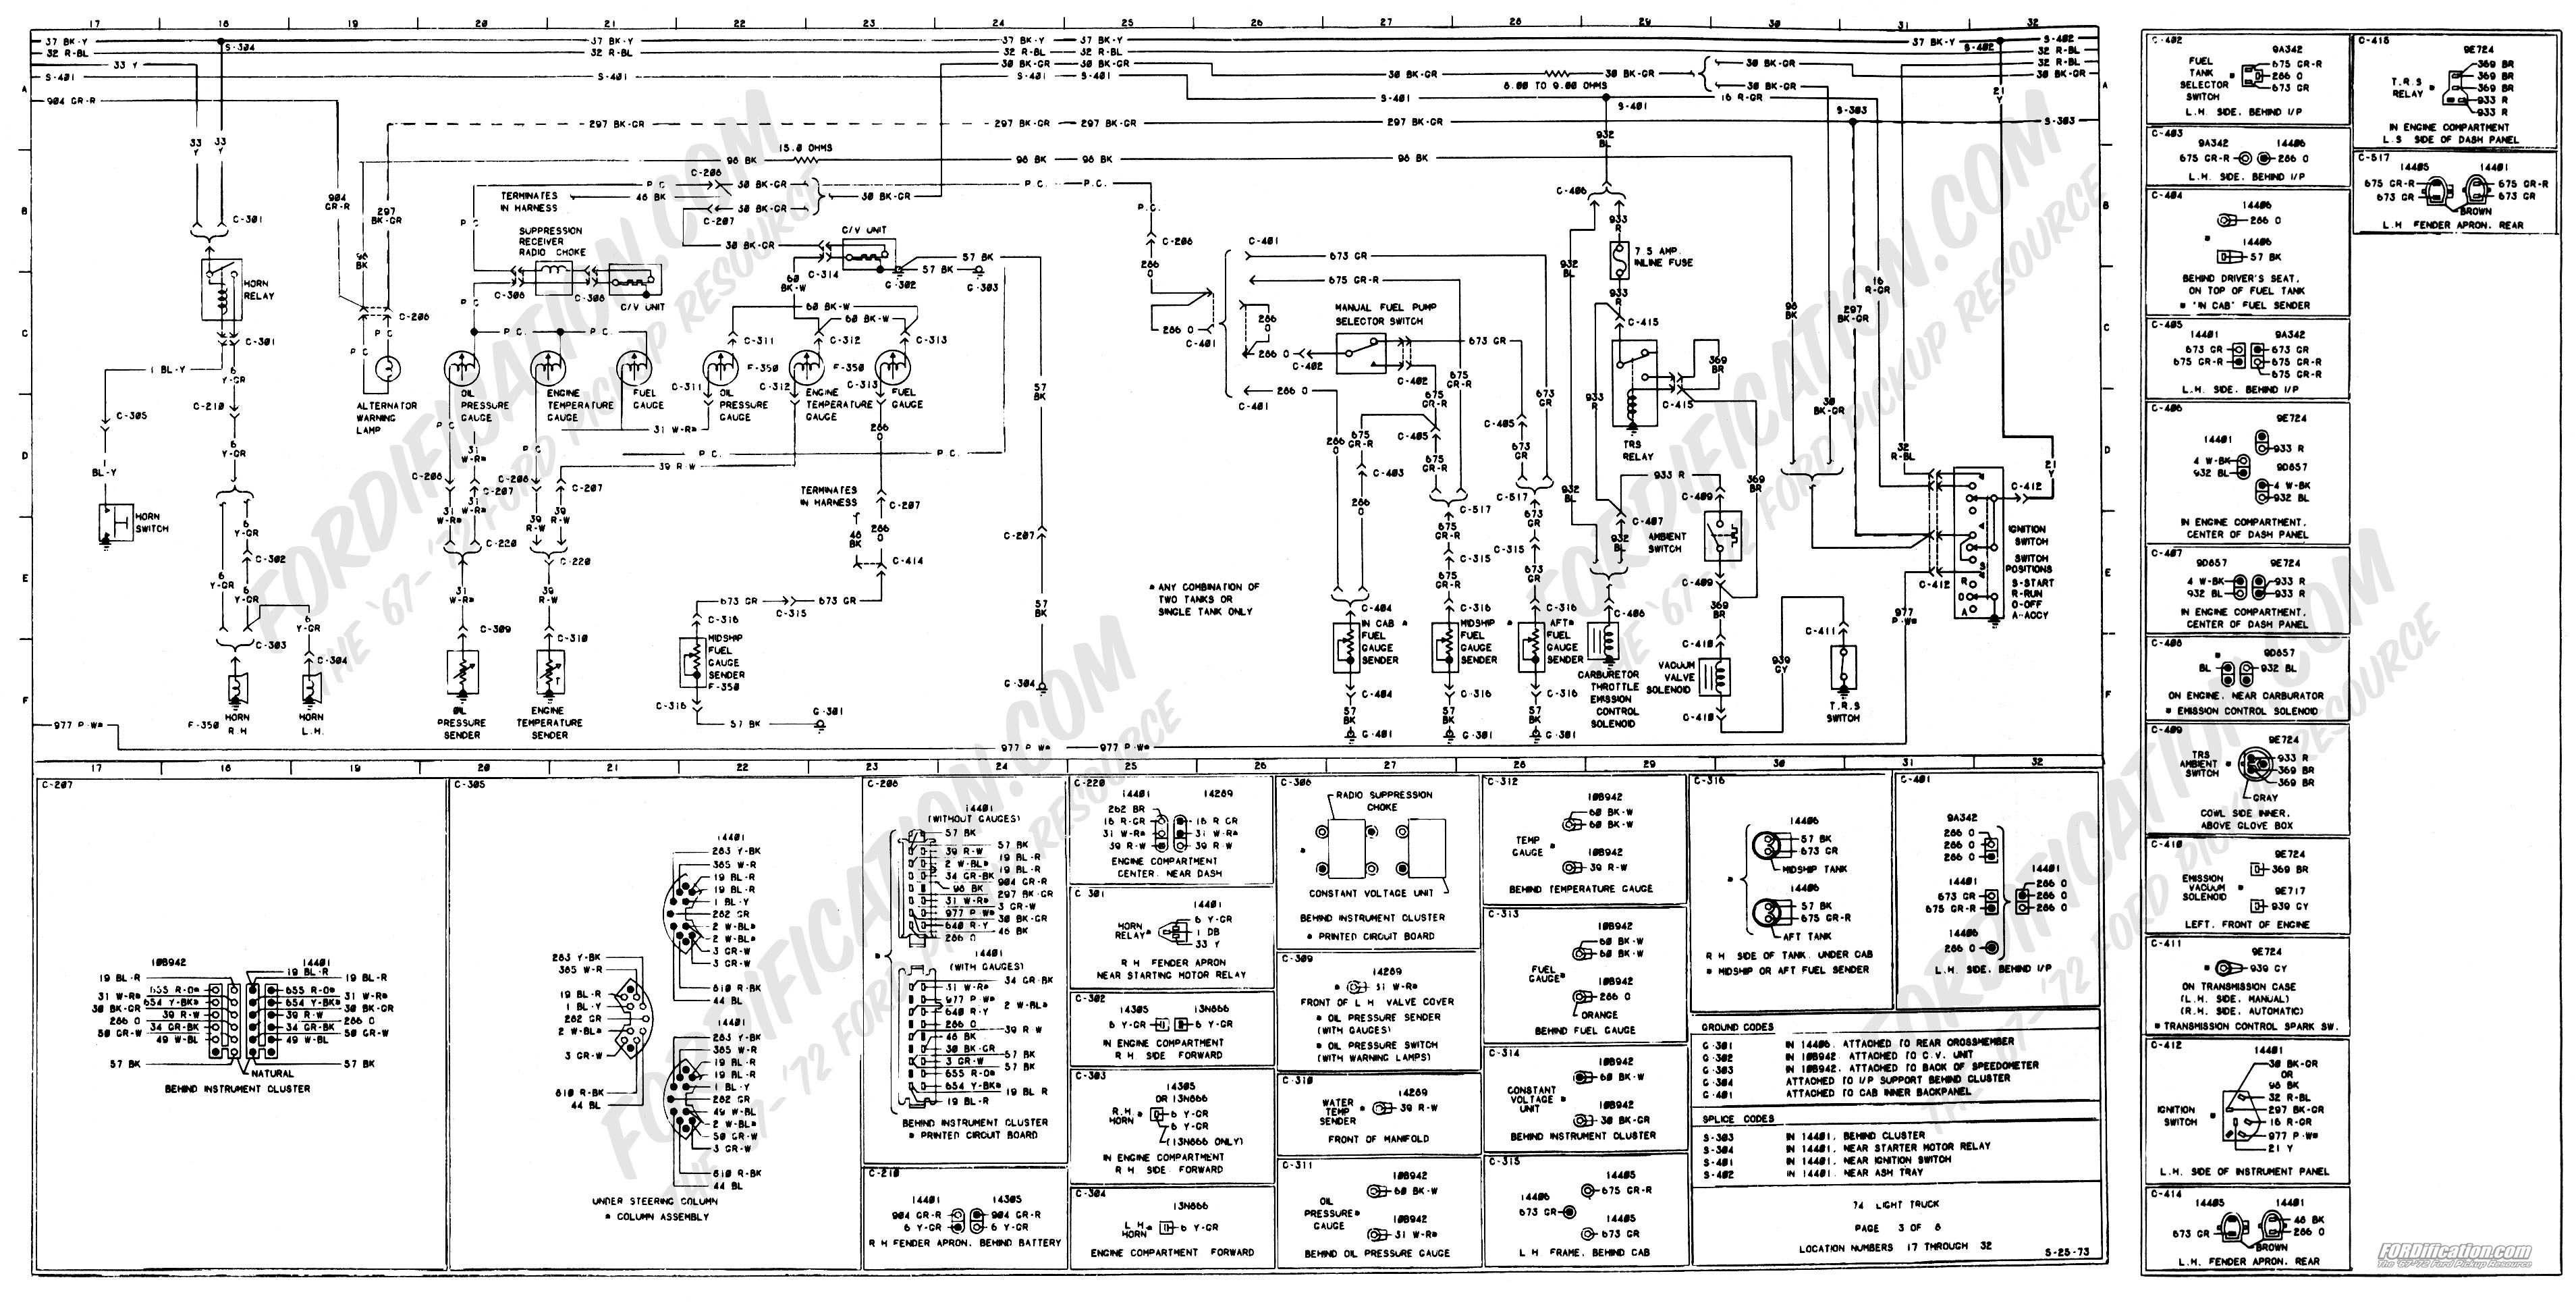 74 f100 help with wiring diagram ford truck enthusiasts forums 1976 f100 ac wiring diagram fordification net tech images aster_3of8 jpg